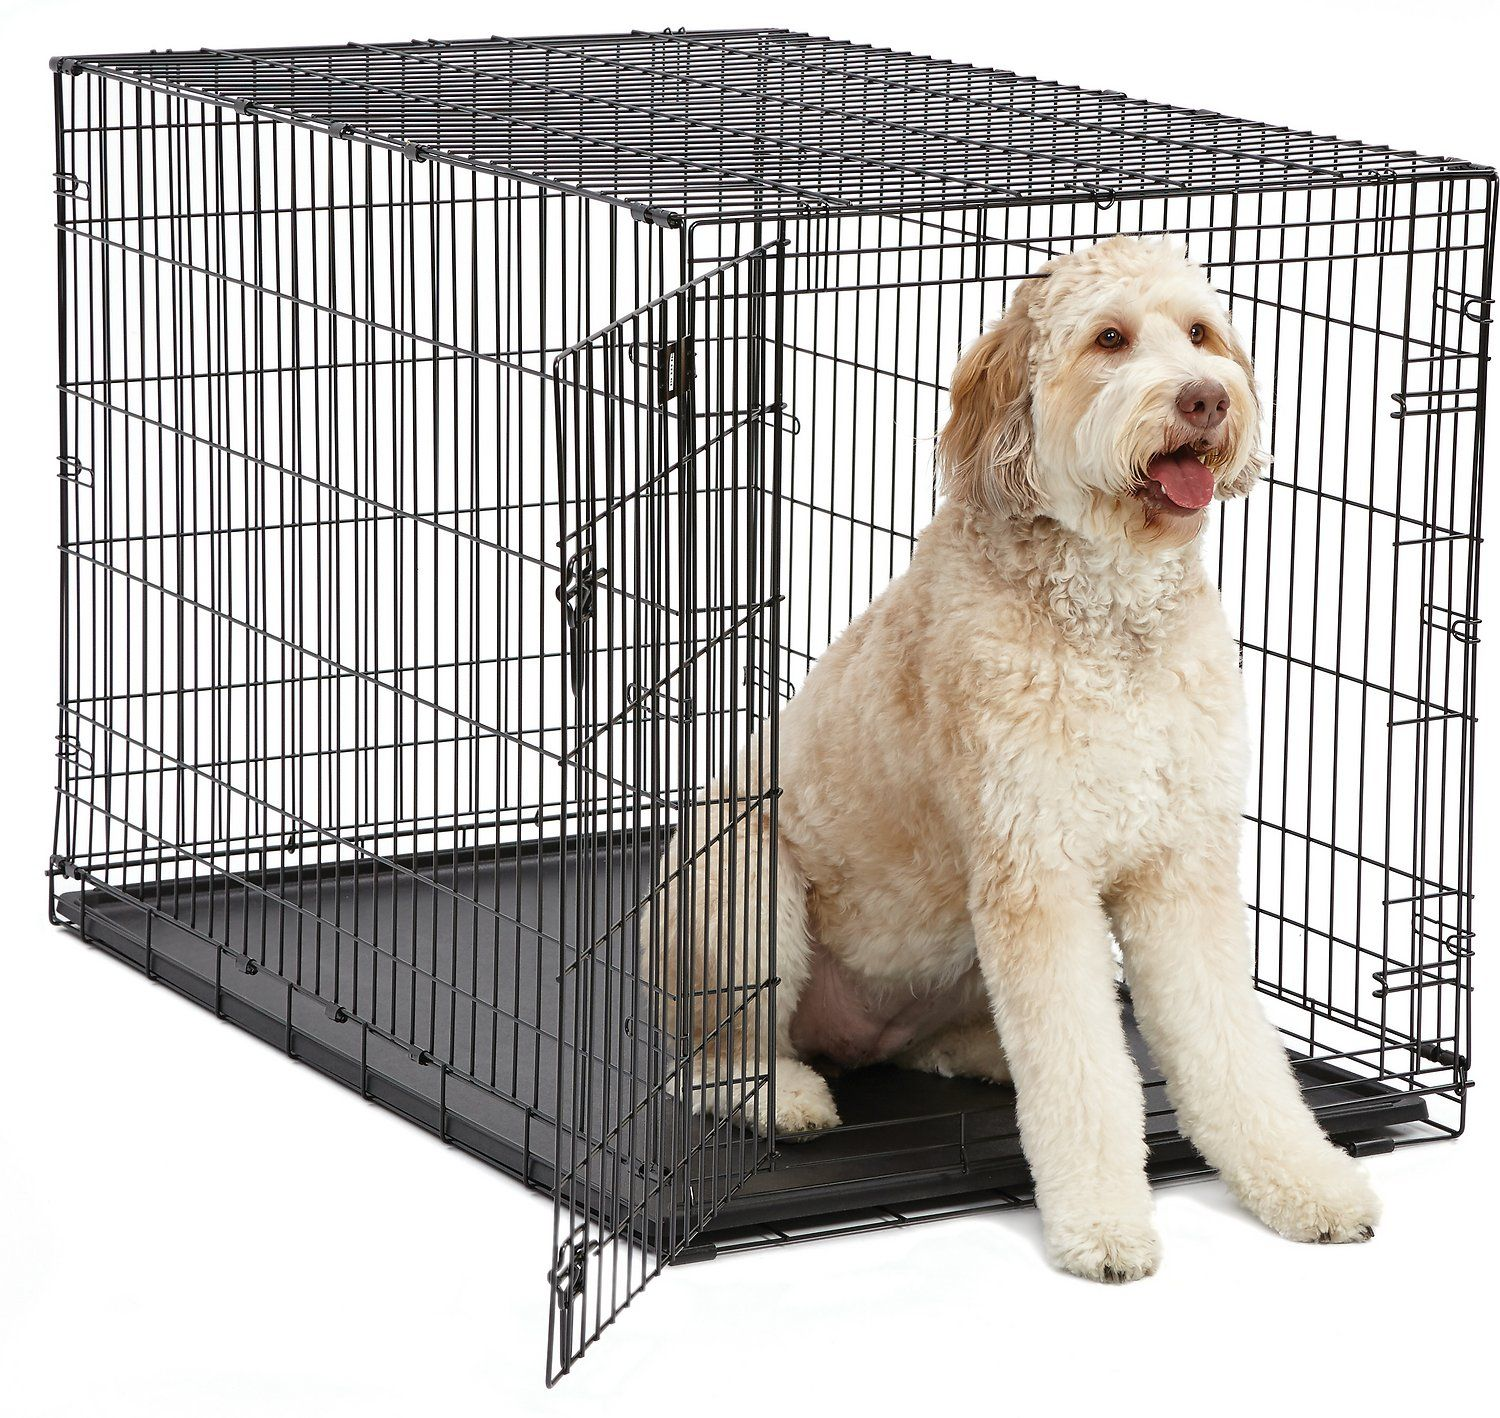 Midwest Icrate Single Door Fold Carry Dog Crate 48 In Chewy Com Dog Cages Dog Crate Dog Boarding Near Me